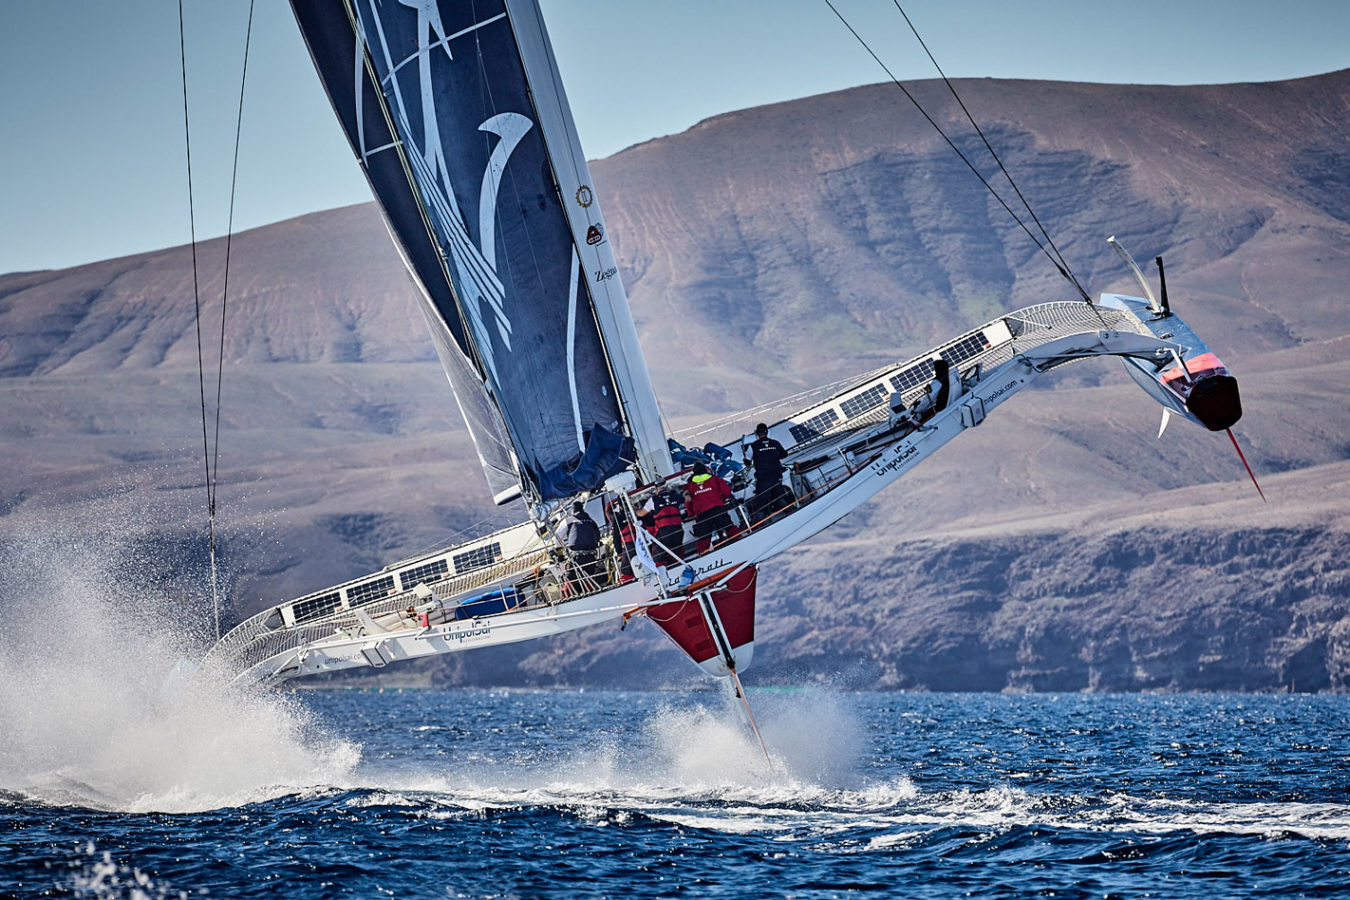 Large white, red and blue sailboat racing in the RORC Transatlantic Race near Lanzarote.